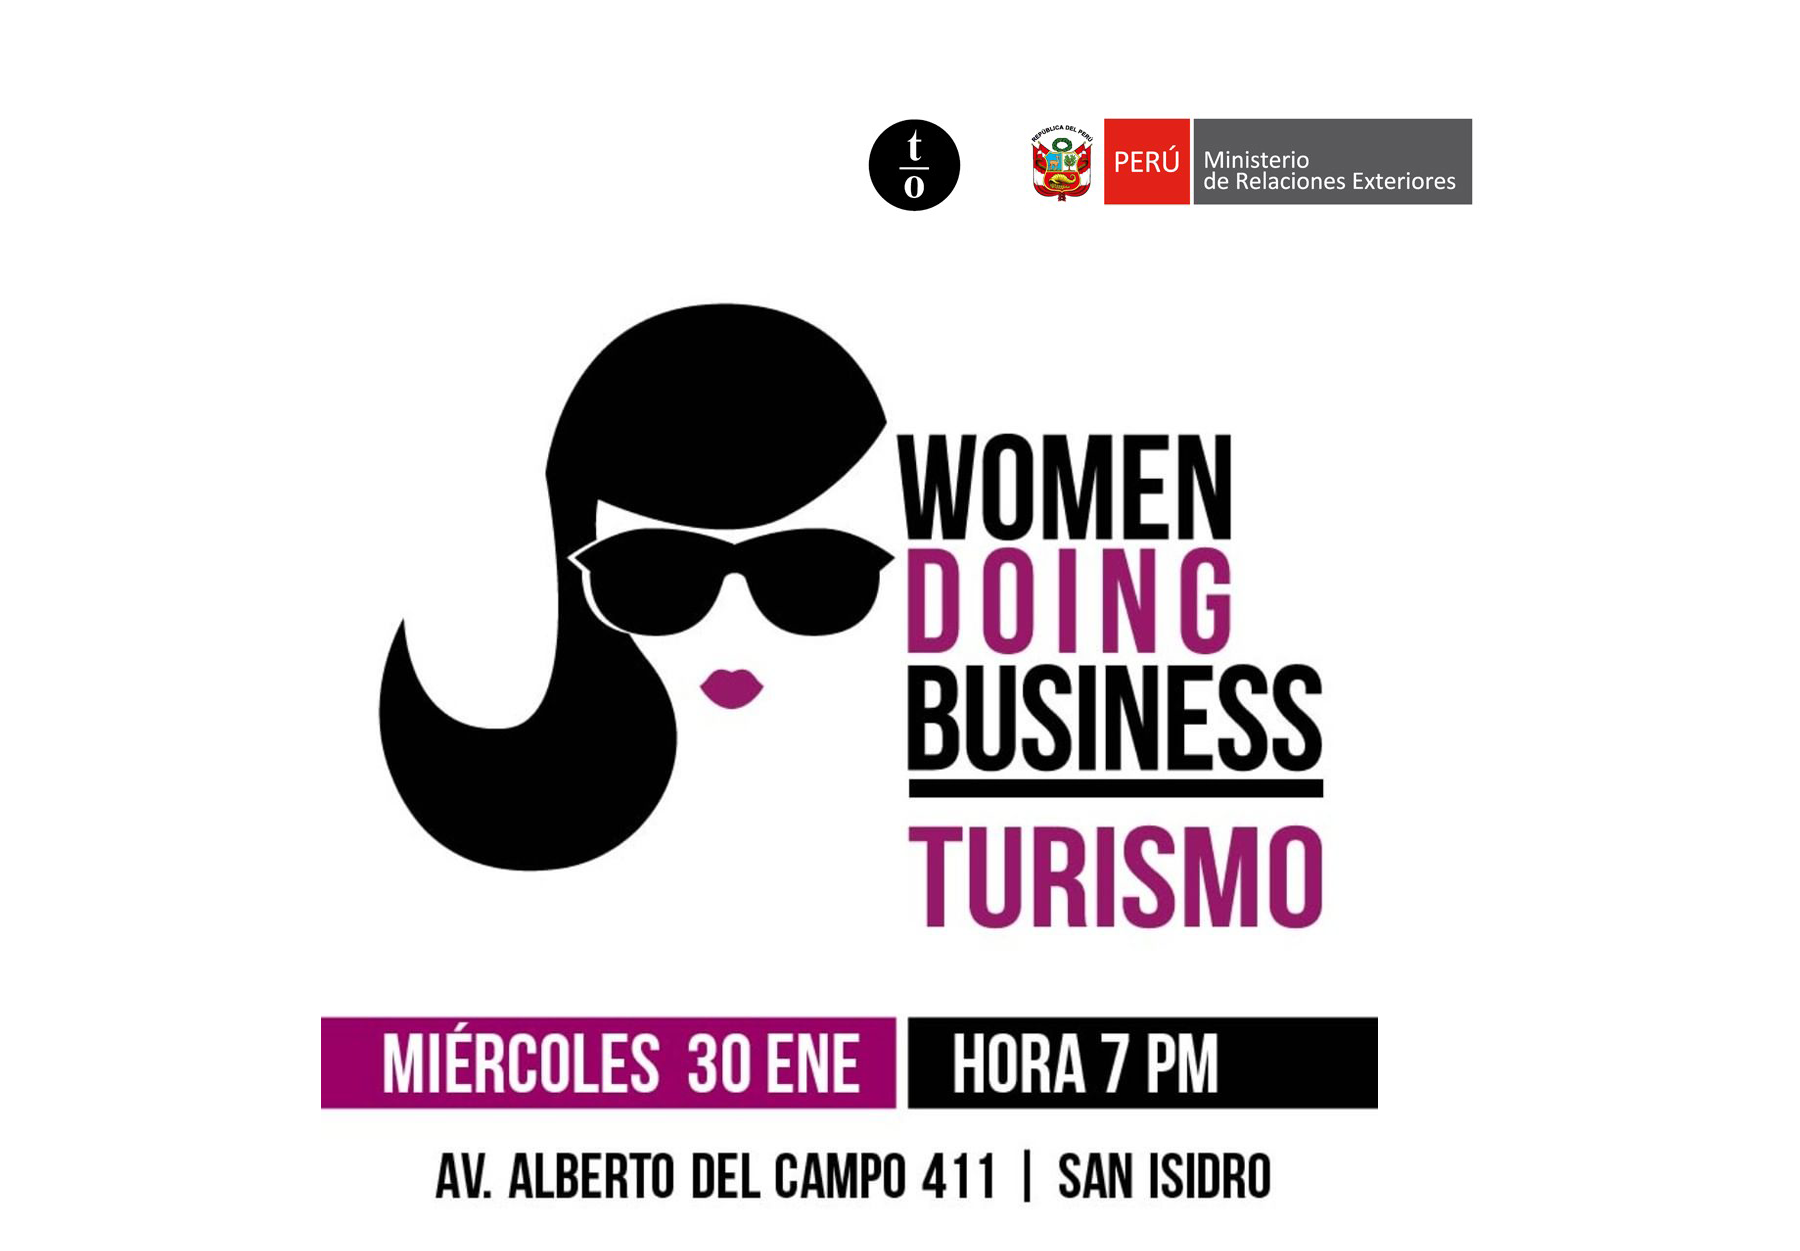 Women-Doing-Business-turismo